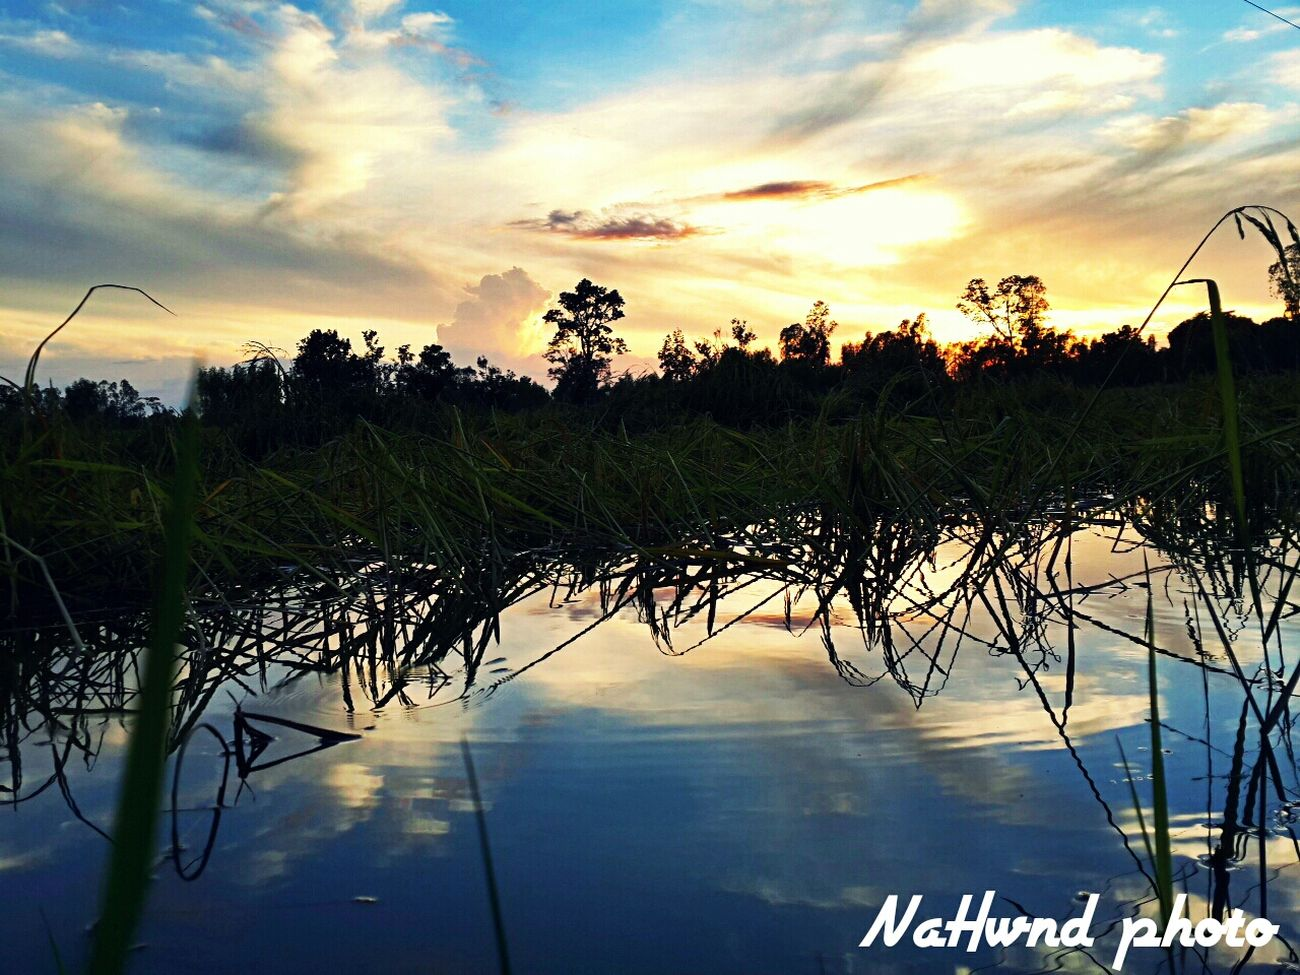 landscape in thailand Landscape_Collection Landscape #Nature #photography Sunset #sun #clouds #skylovers #sky #nature Beautifulinnature Naturalbeauty Photography Landscape Thailand_allshots